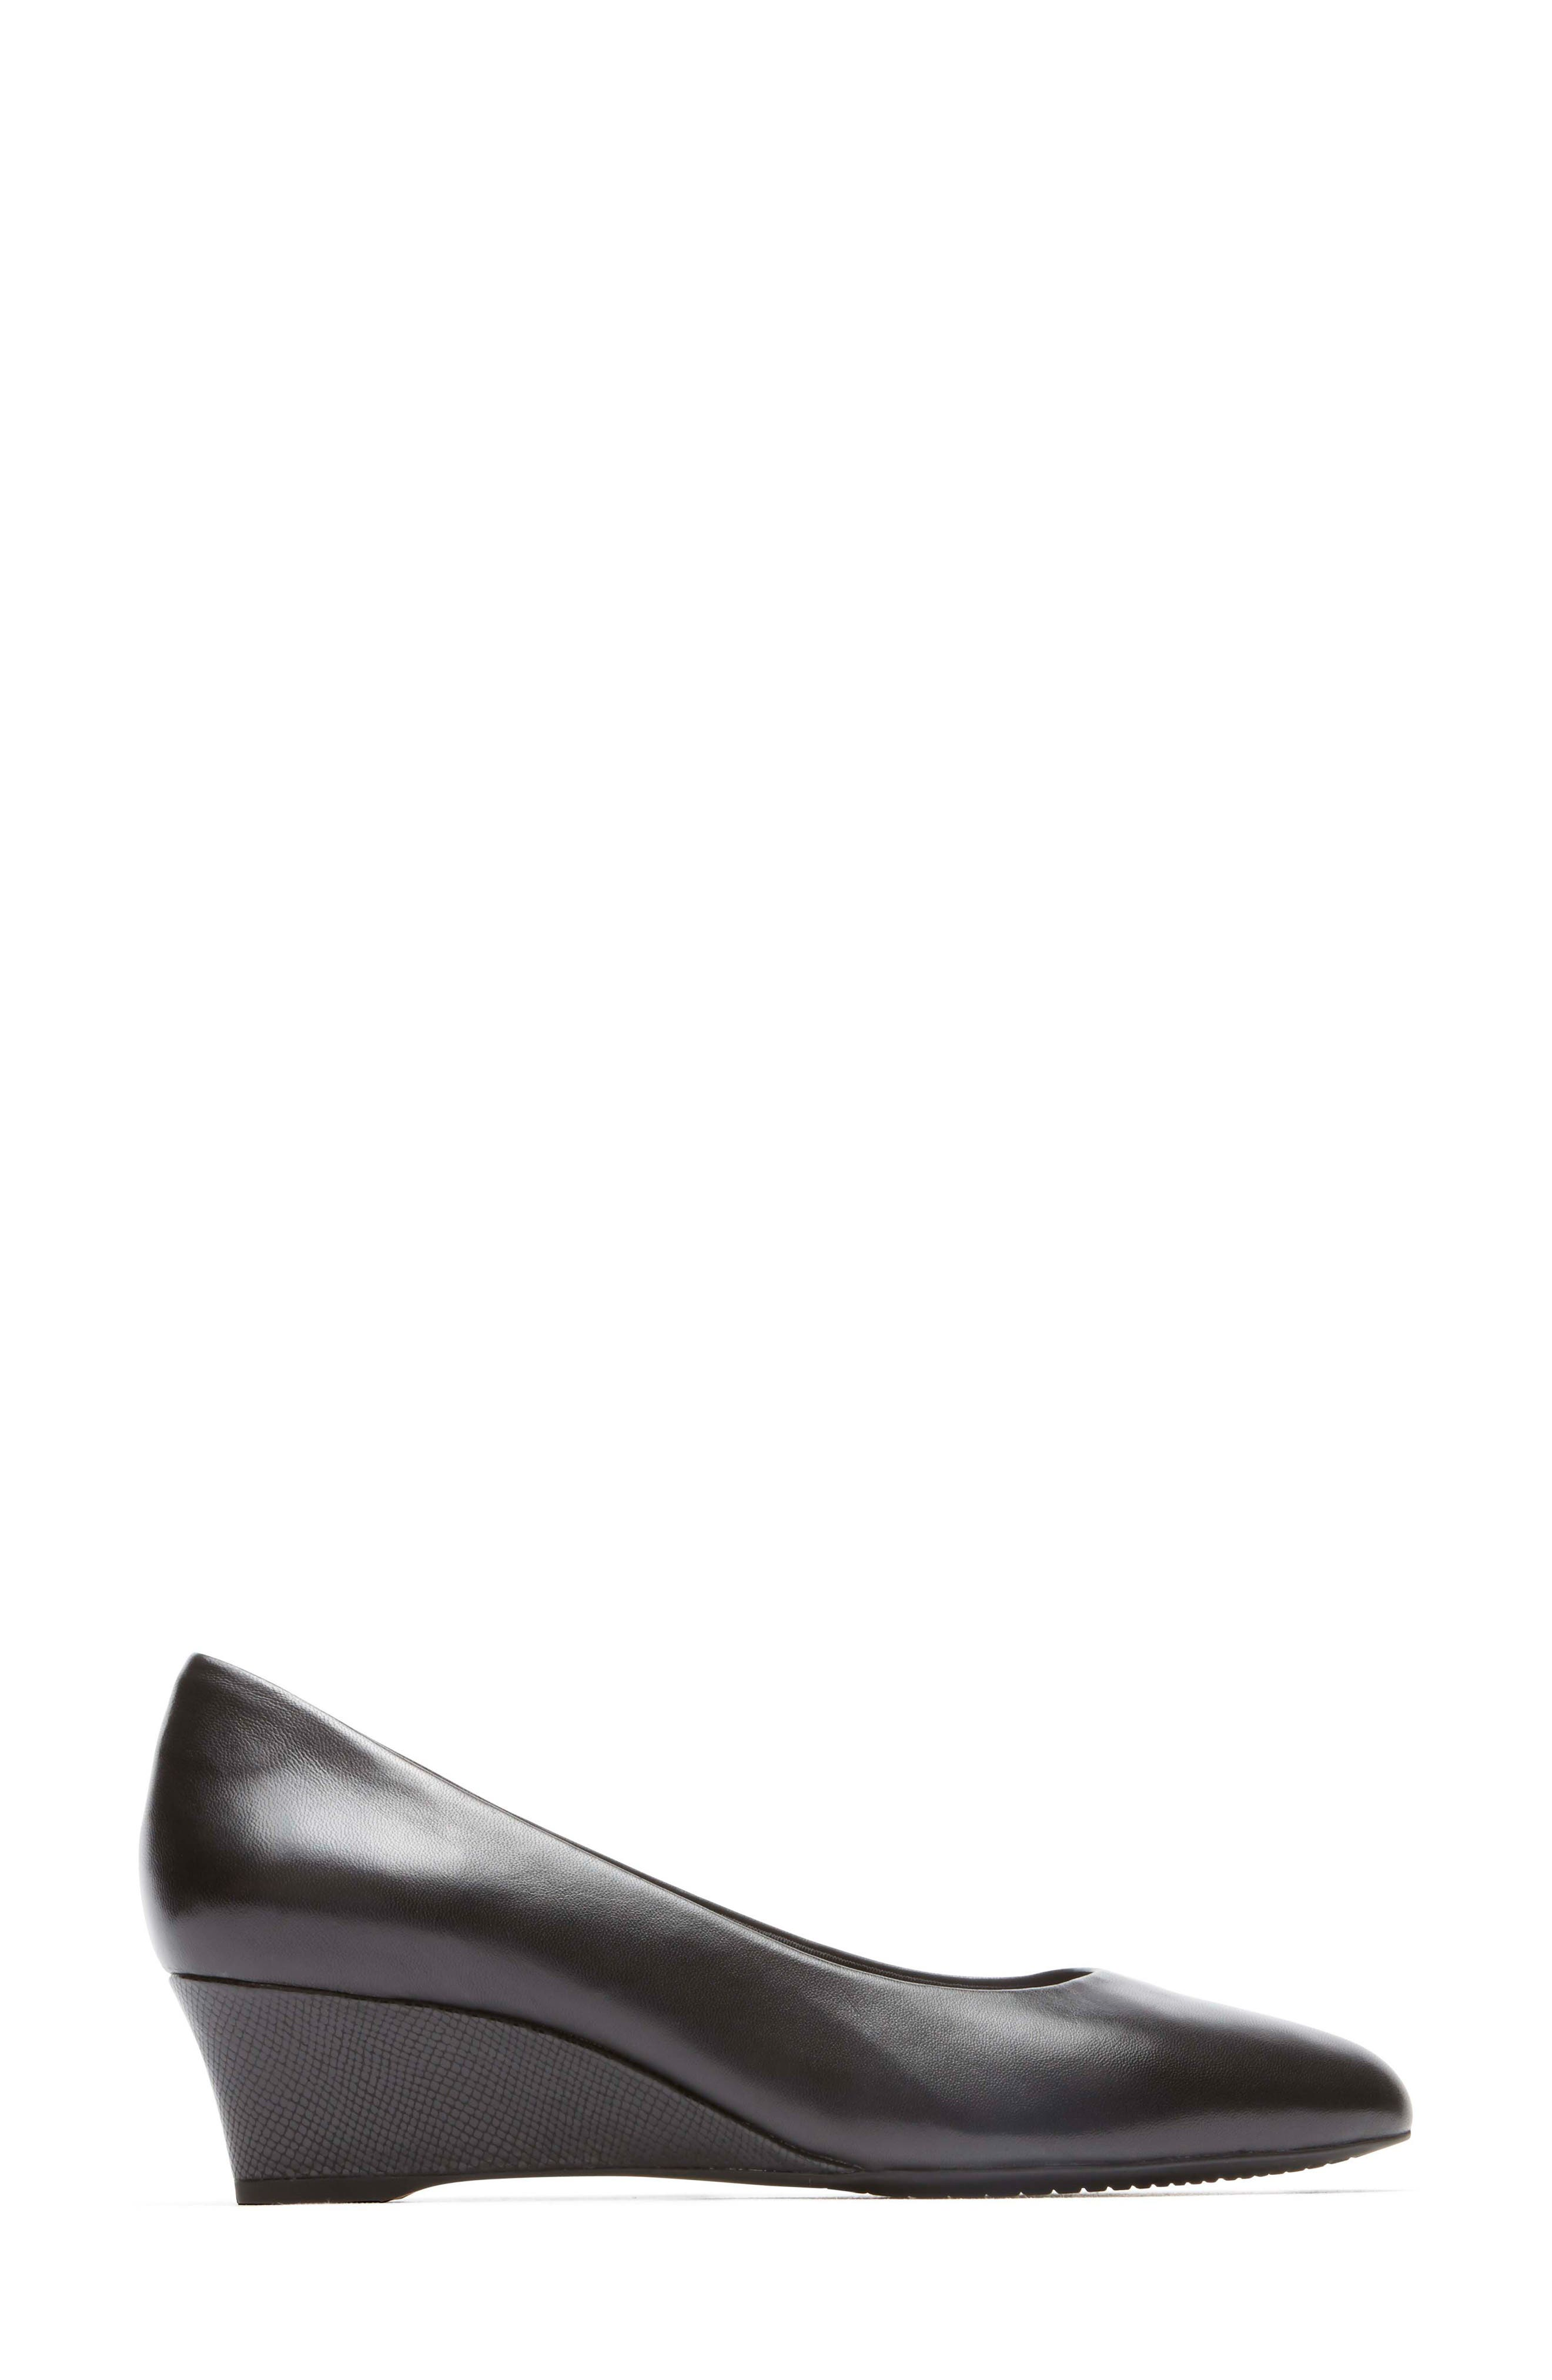 Total Motion Catrin Wedge Pump,                             Alternate thumbnail 3, color,                             BLACK LEATHER